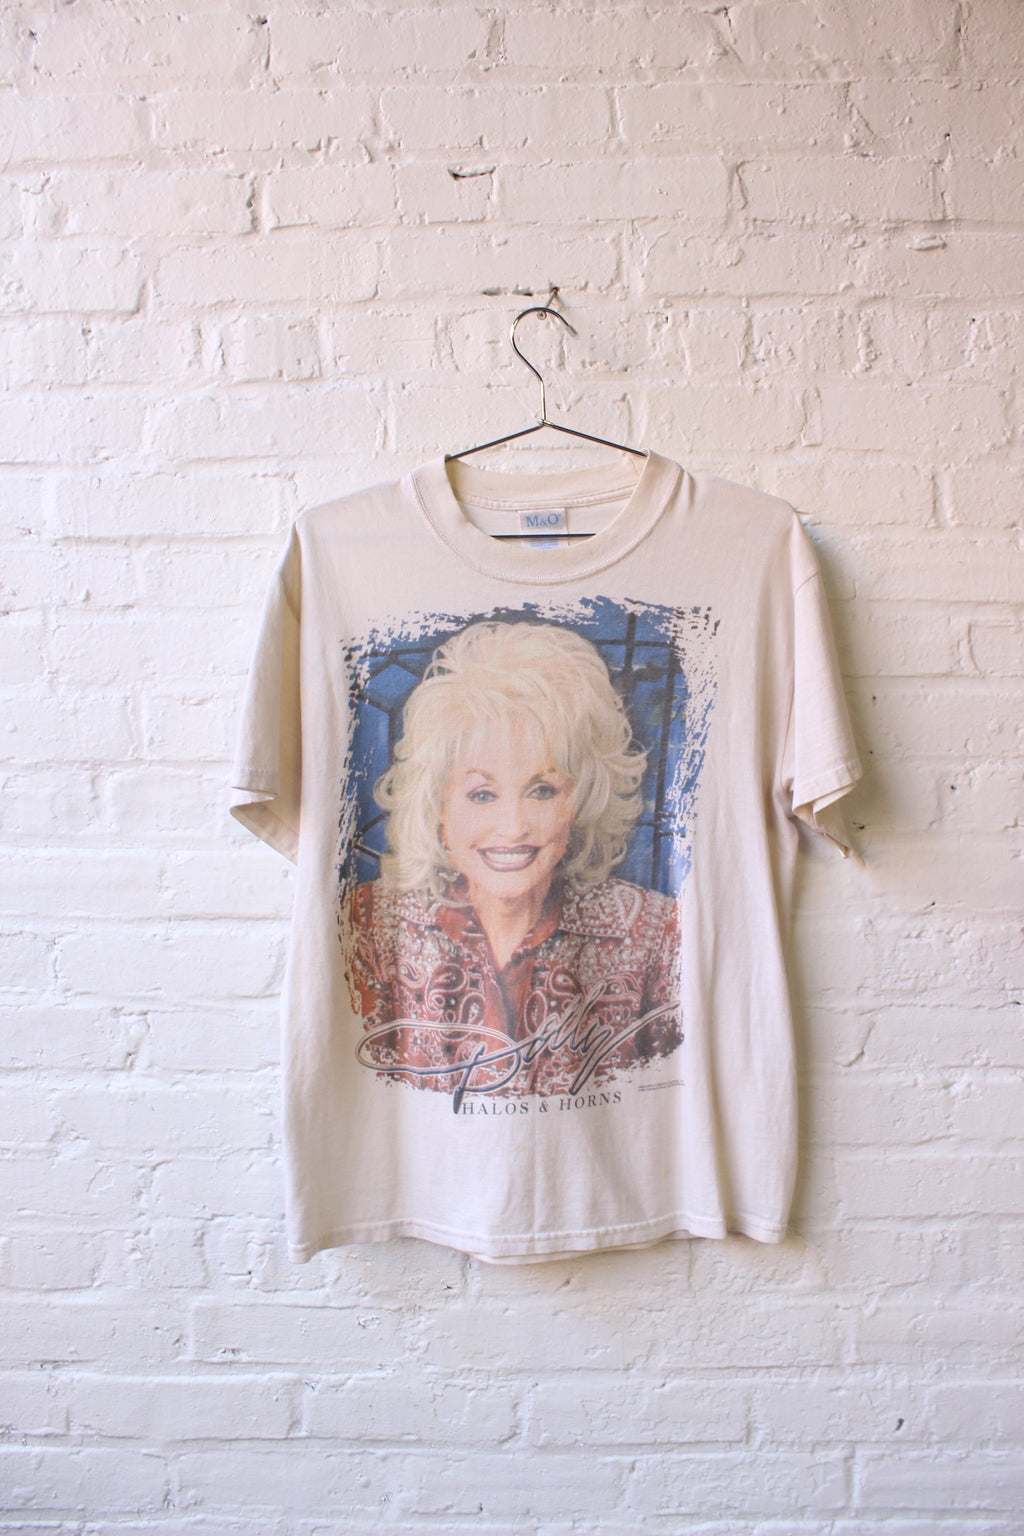 Dolly Parton 2002 Tour Tee